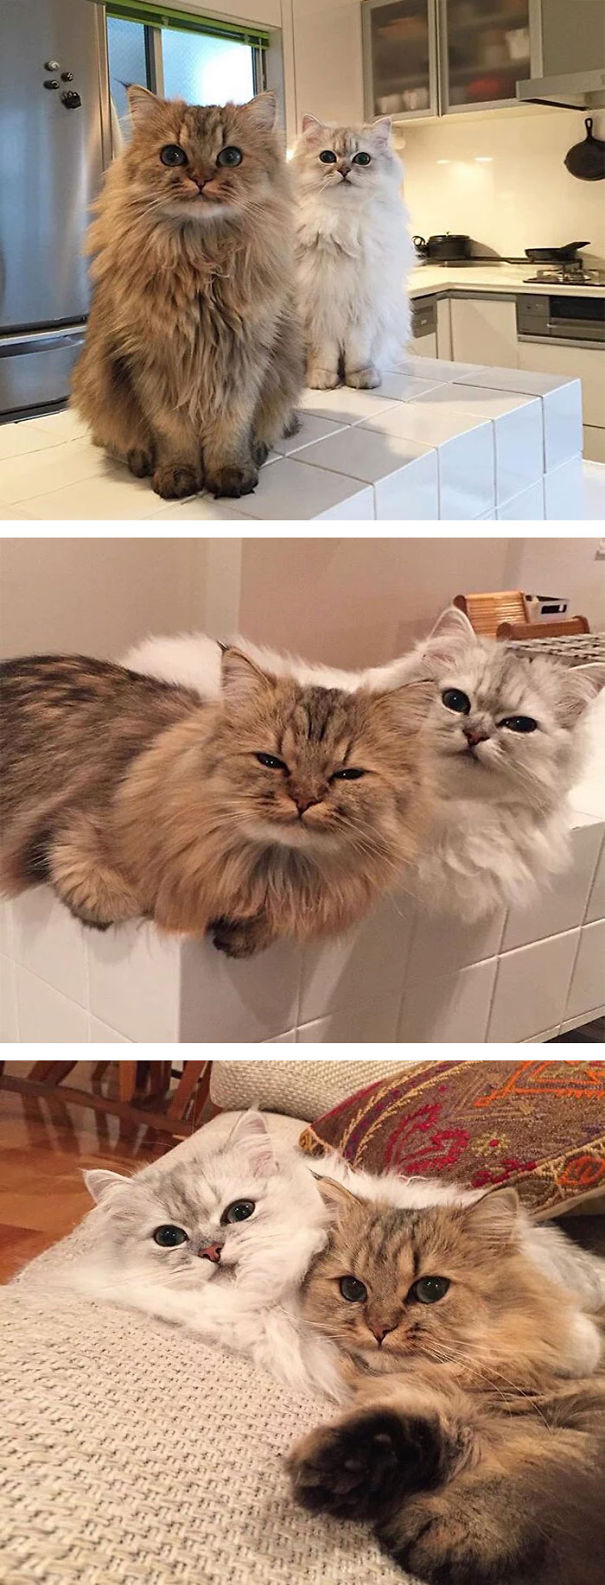 12-Fluffiest-fluffy-cats-in-the-world